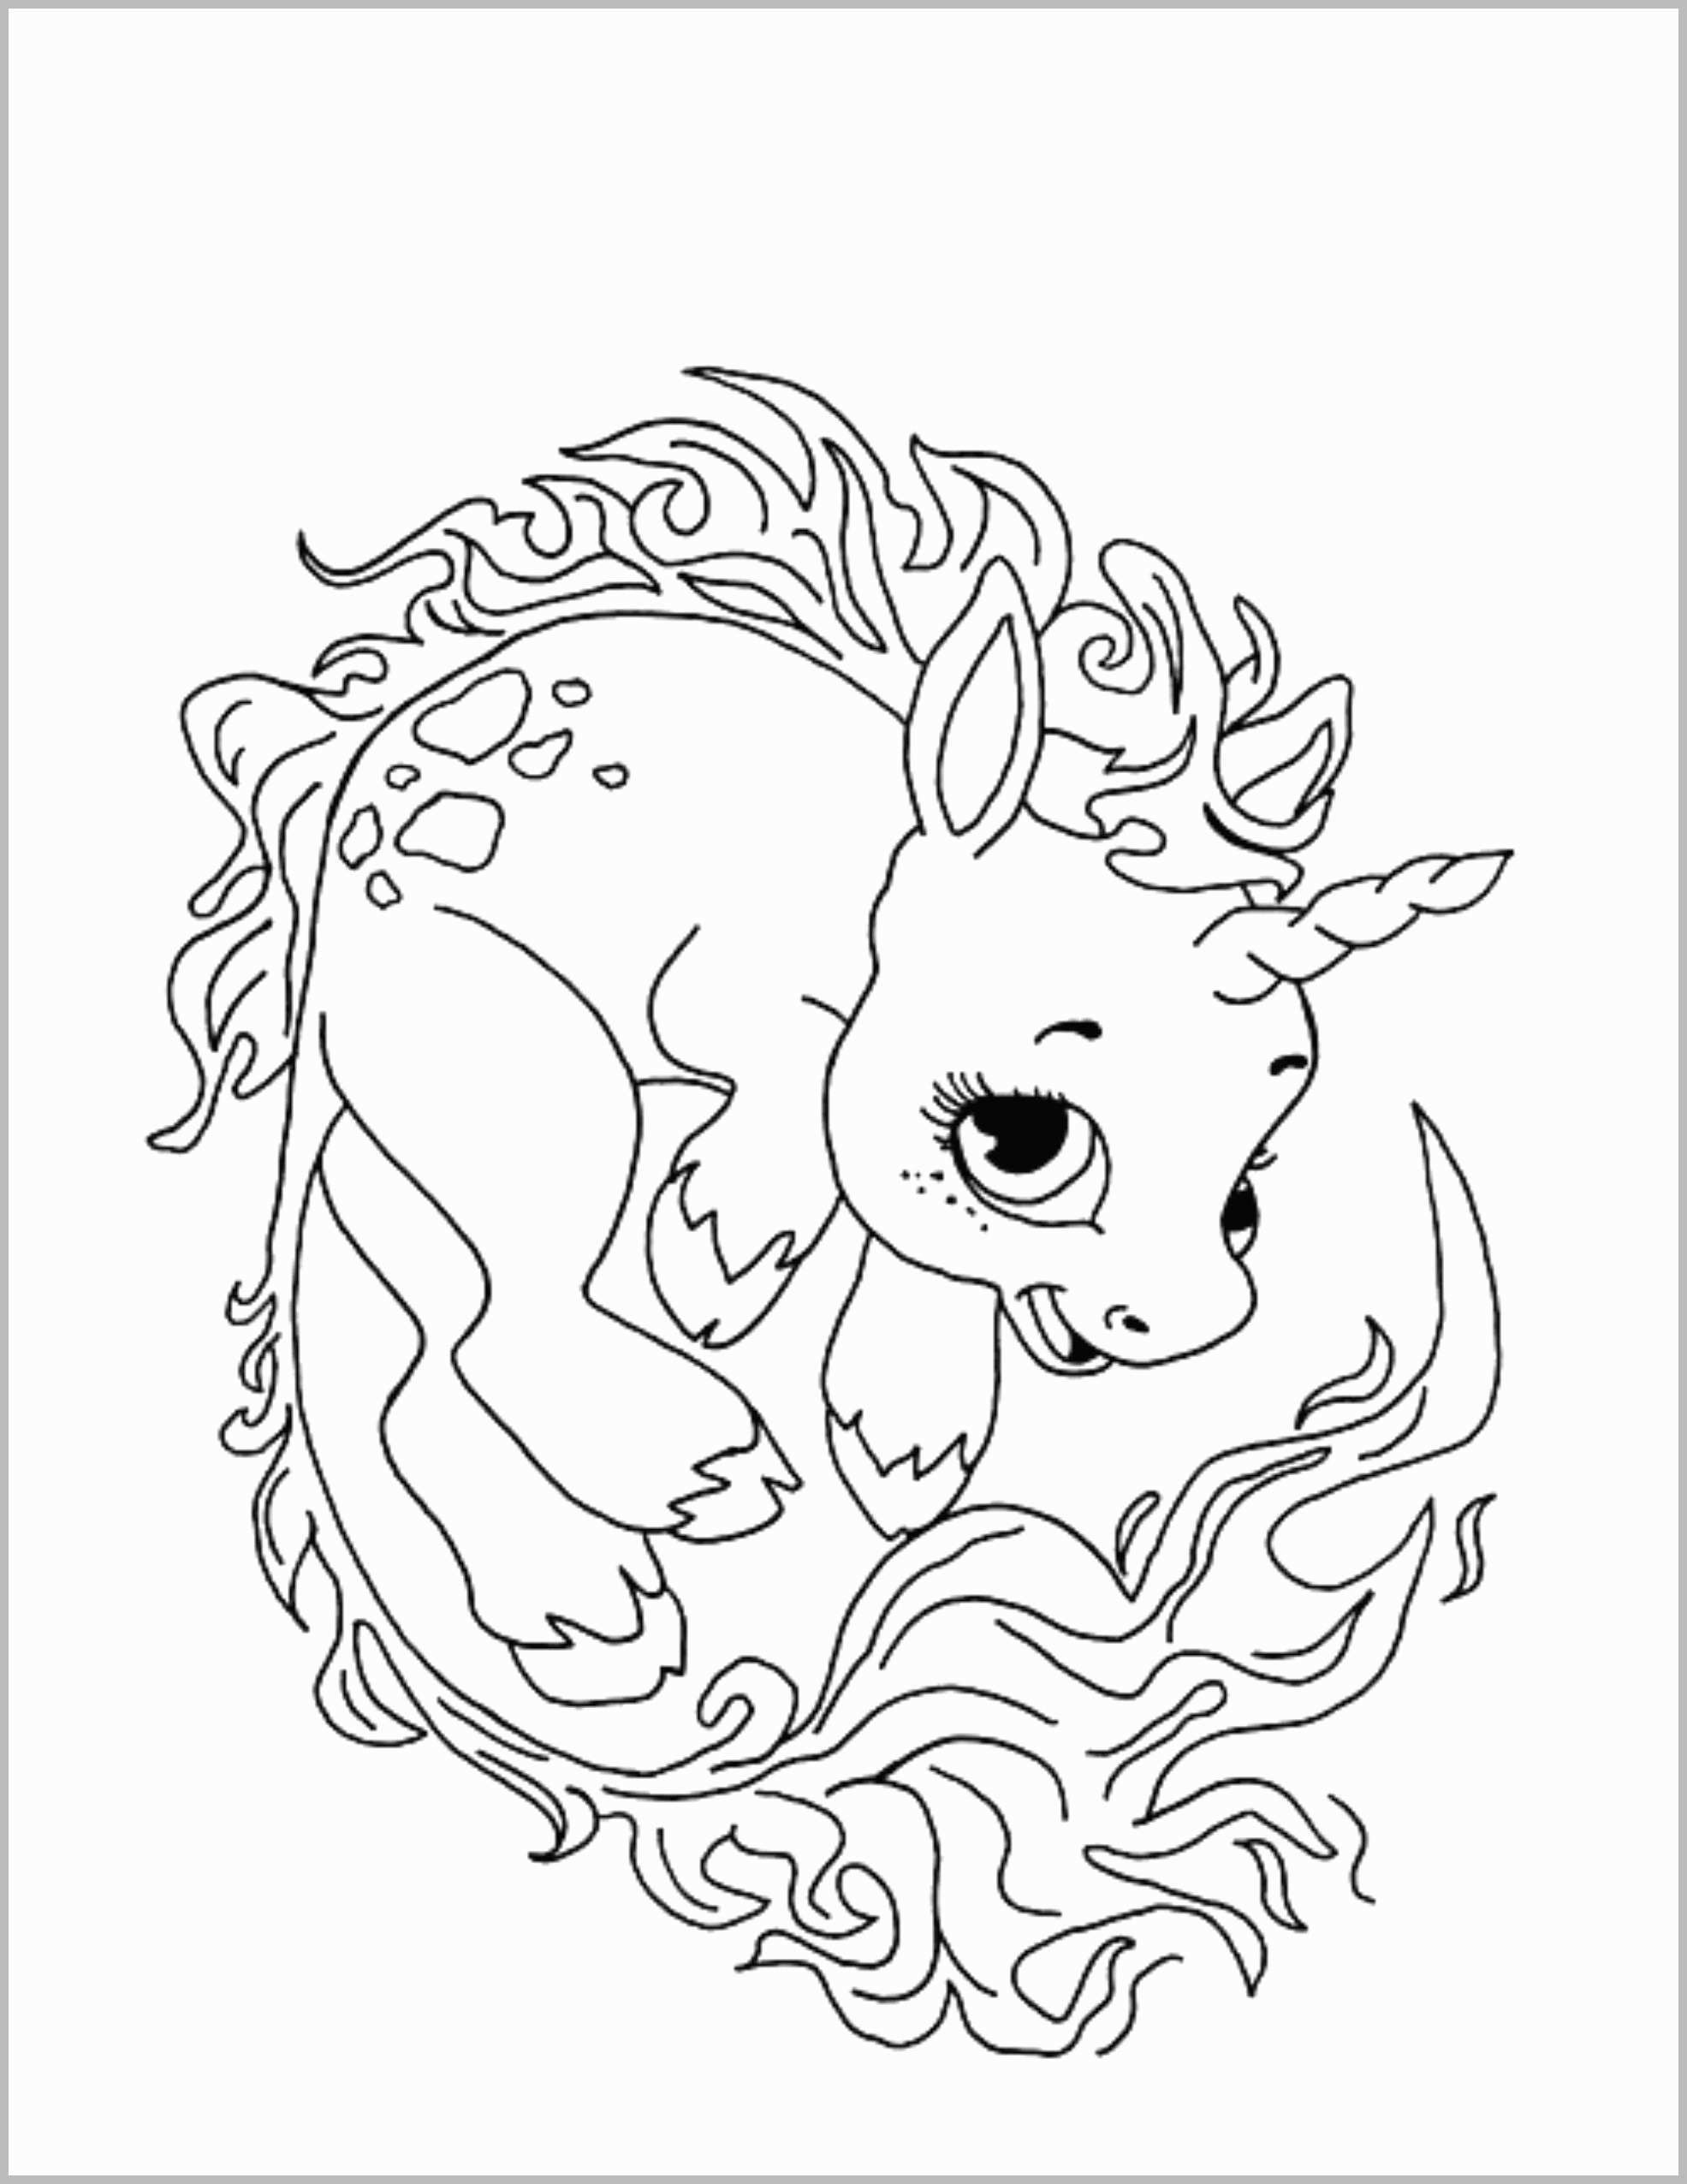 Jojo Siwa Coloring Pages Jojo Siwa Coloring Book Pages Albanysinsanity Com Unicorn Coloring Pages Mermaid Coloring Pages Dragon Coloring Page